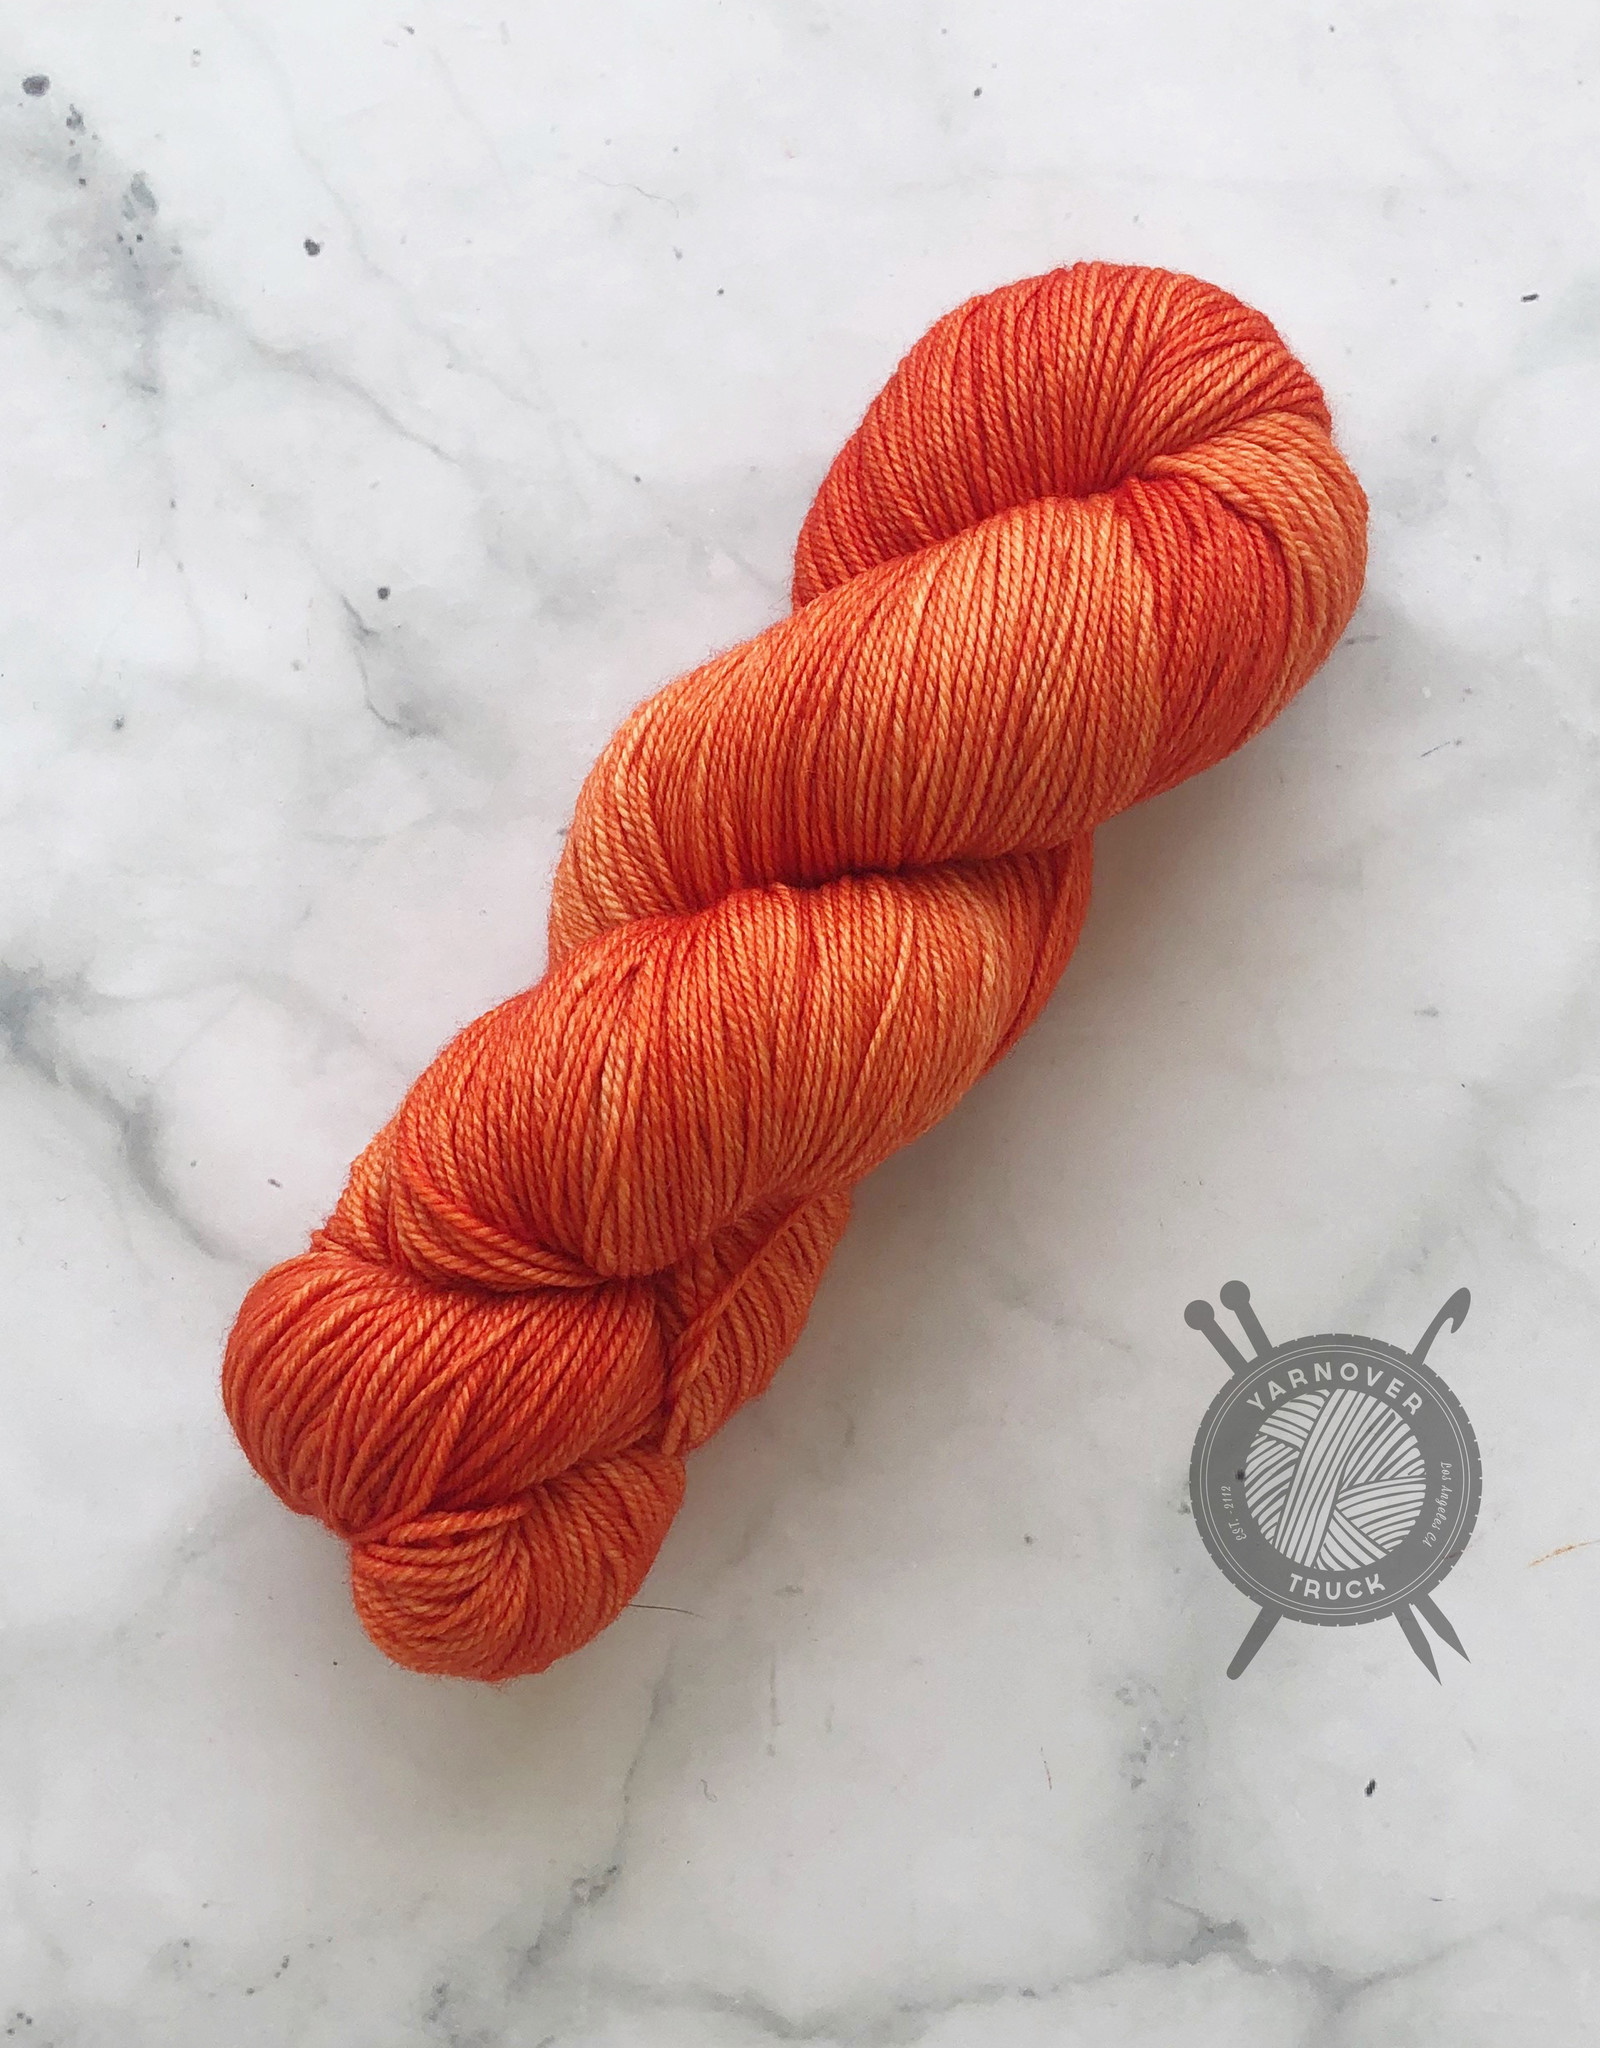 Anzula Marigold on Squishy from Anzula Luxury Fibers